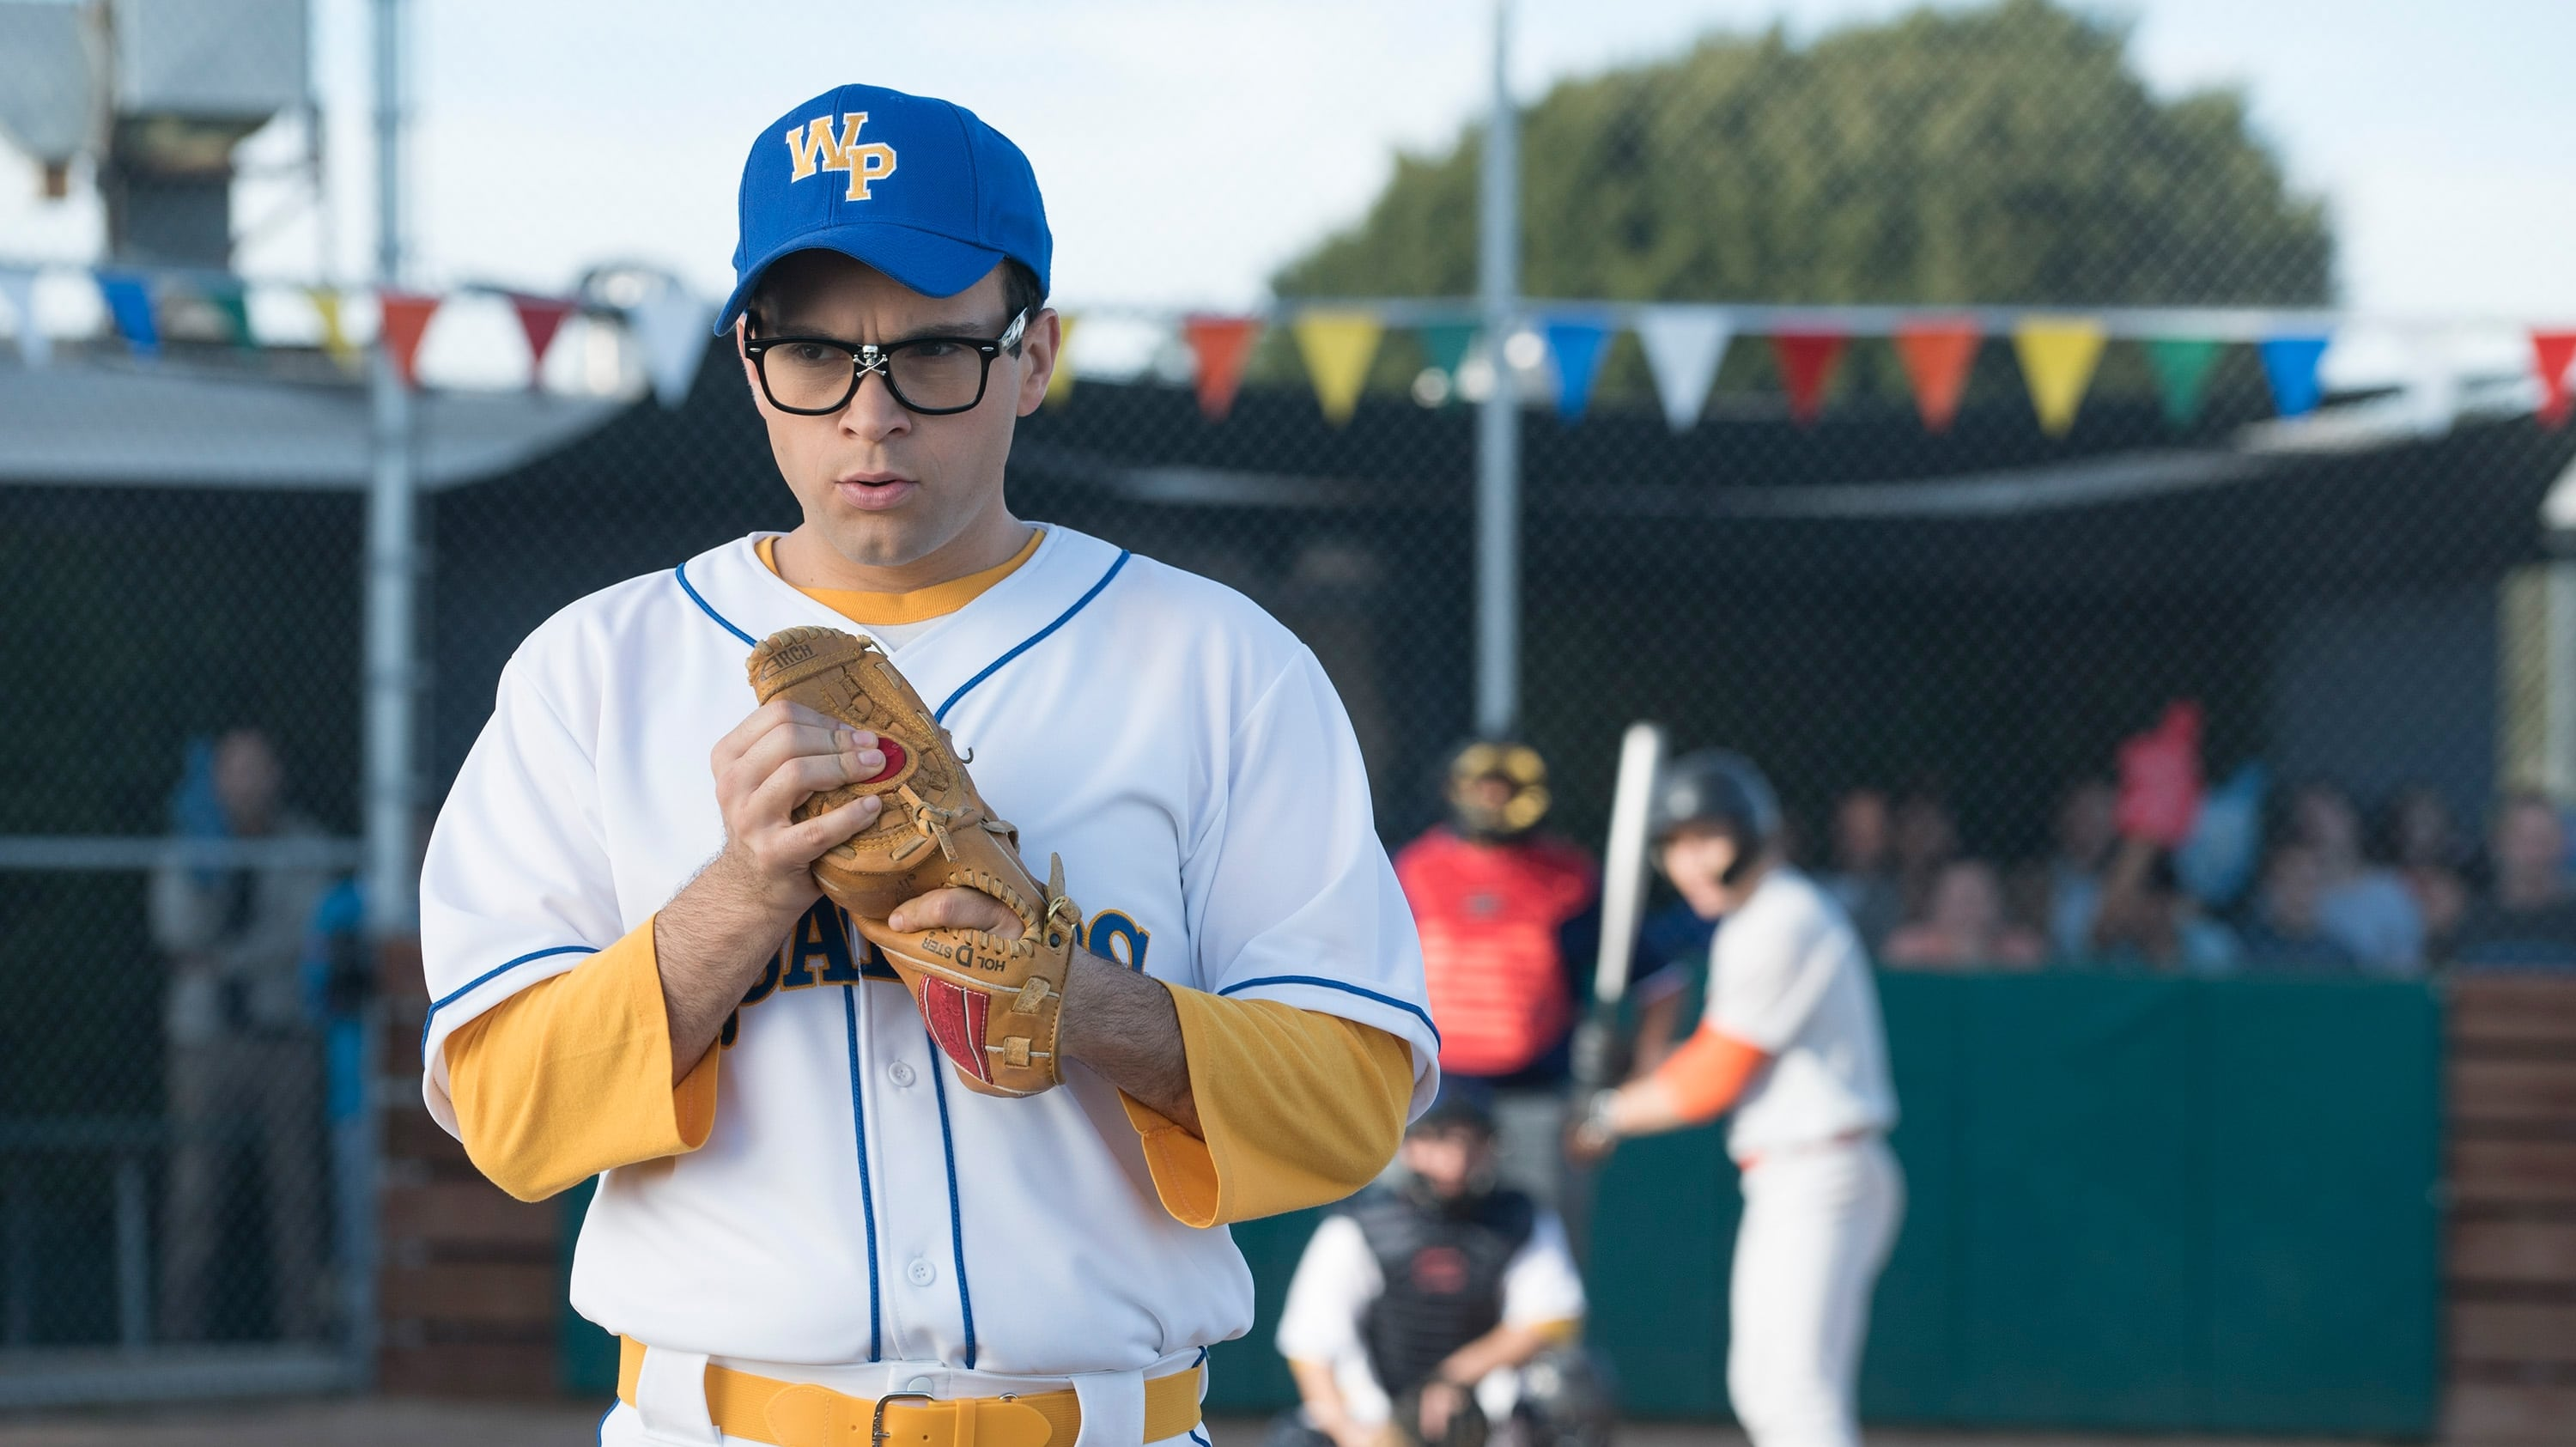 The Goldbergs - Season 6 Episode 14 : Major League'd